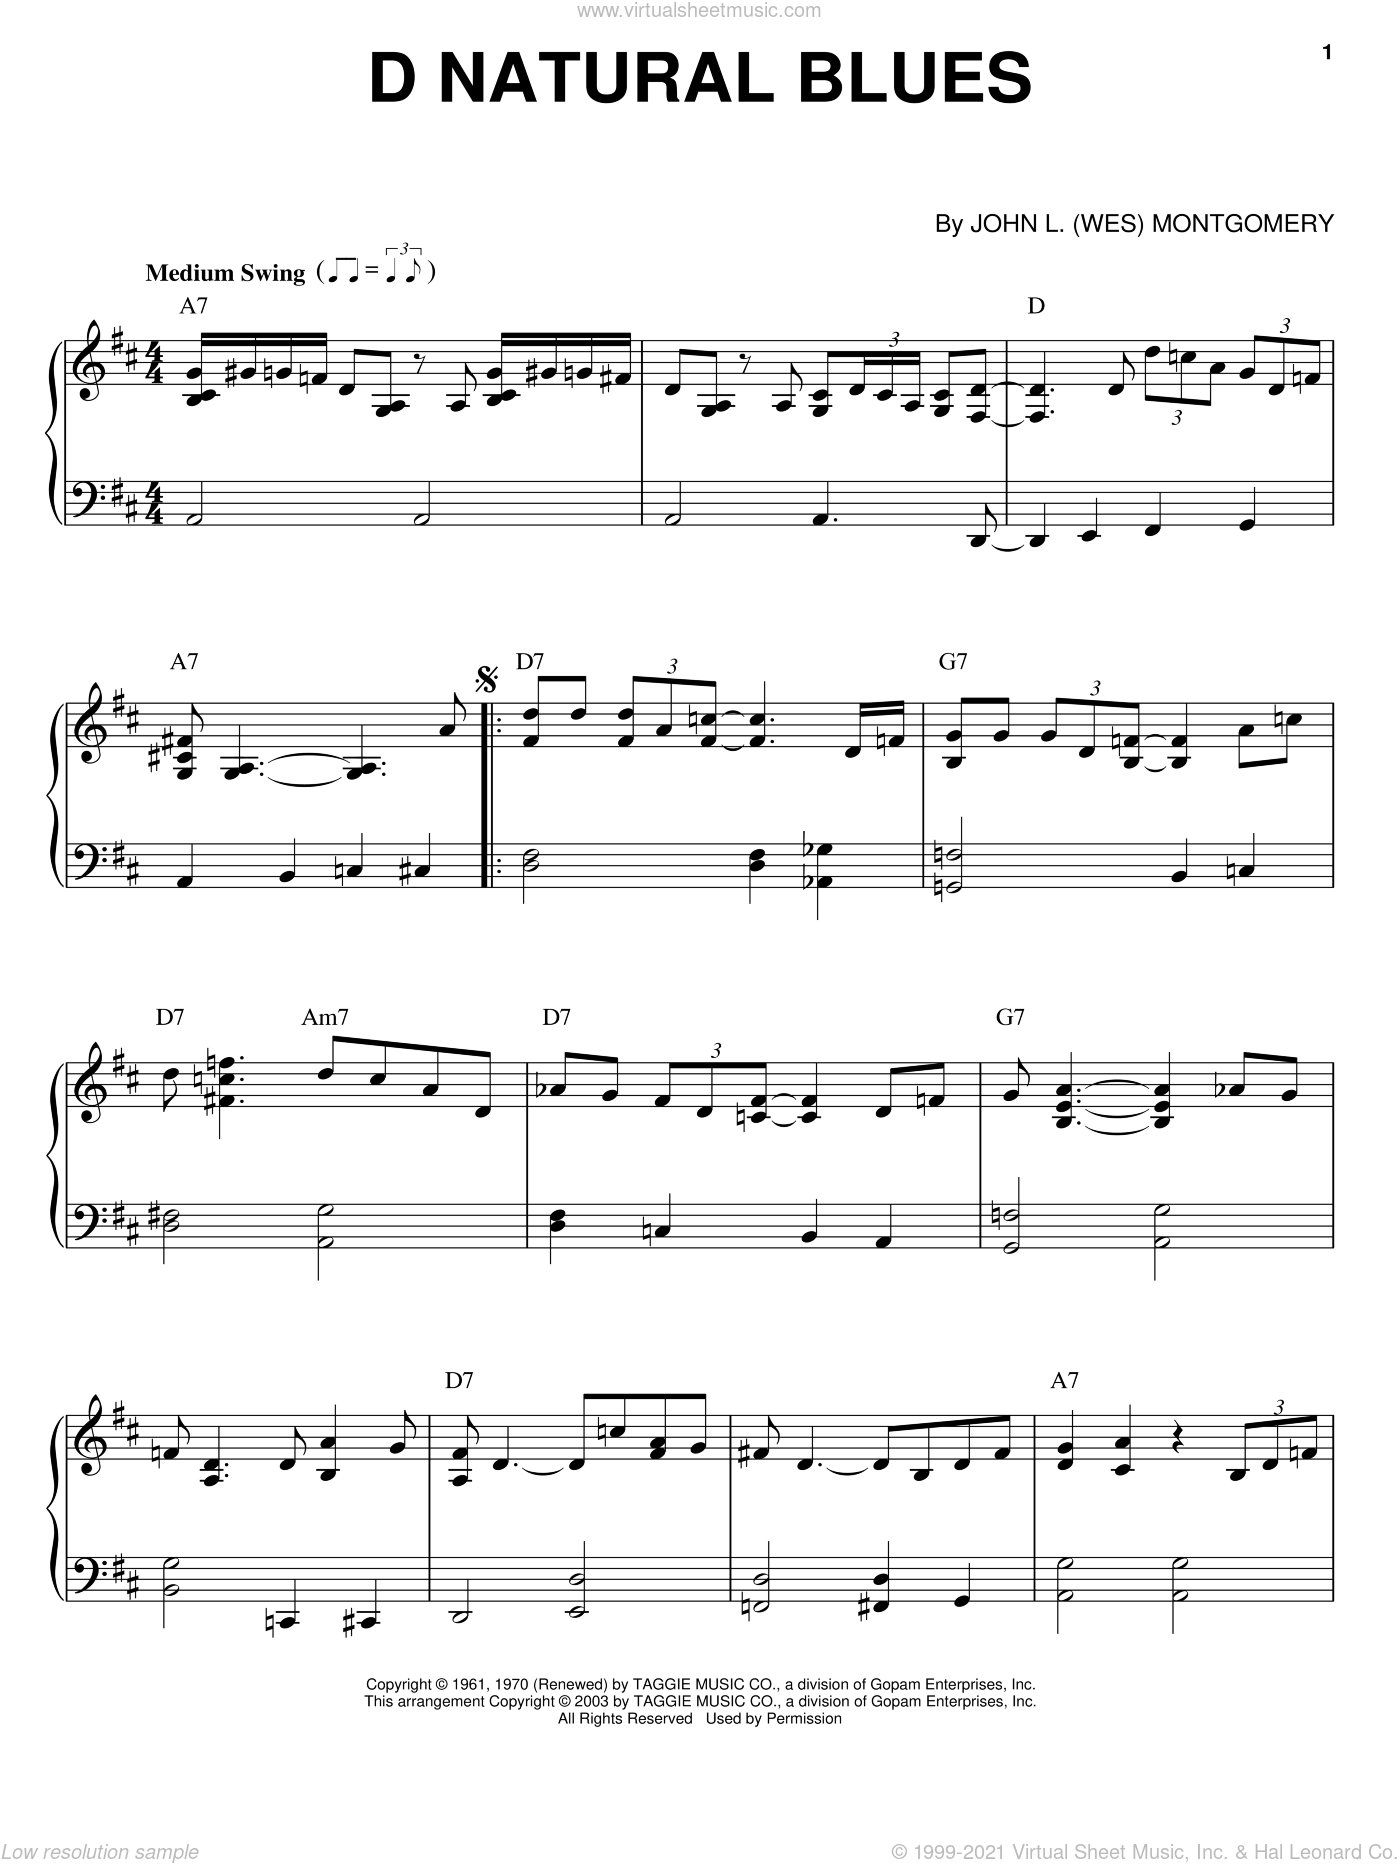 D Natural Blues sheet music for piano solo by Wes Montgomery, intermediate skill level